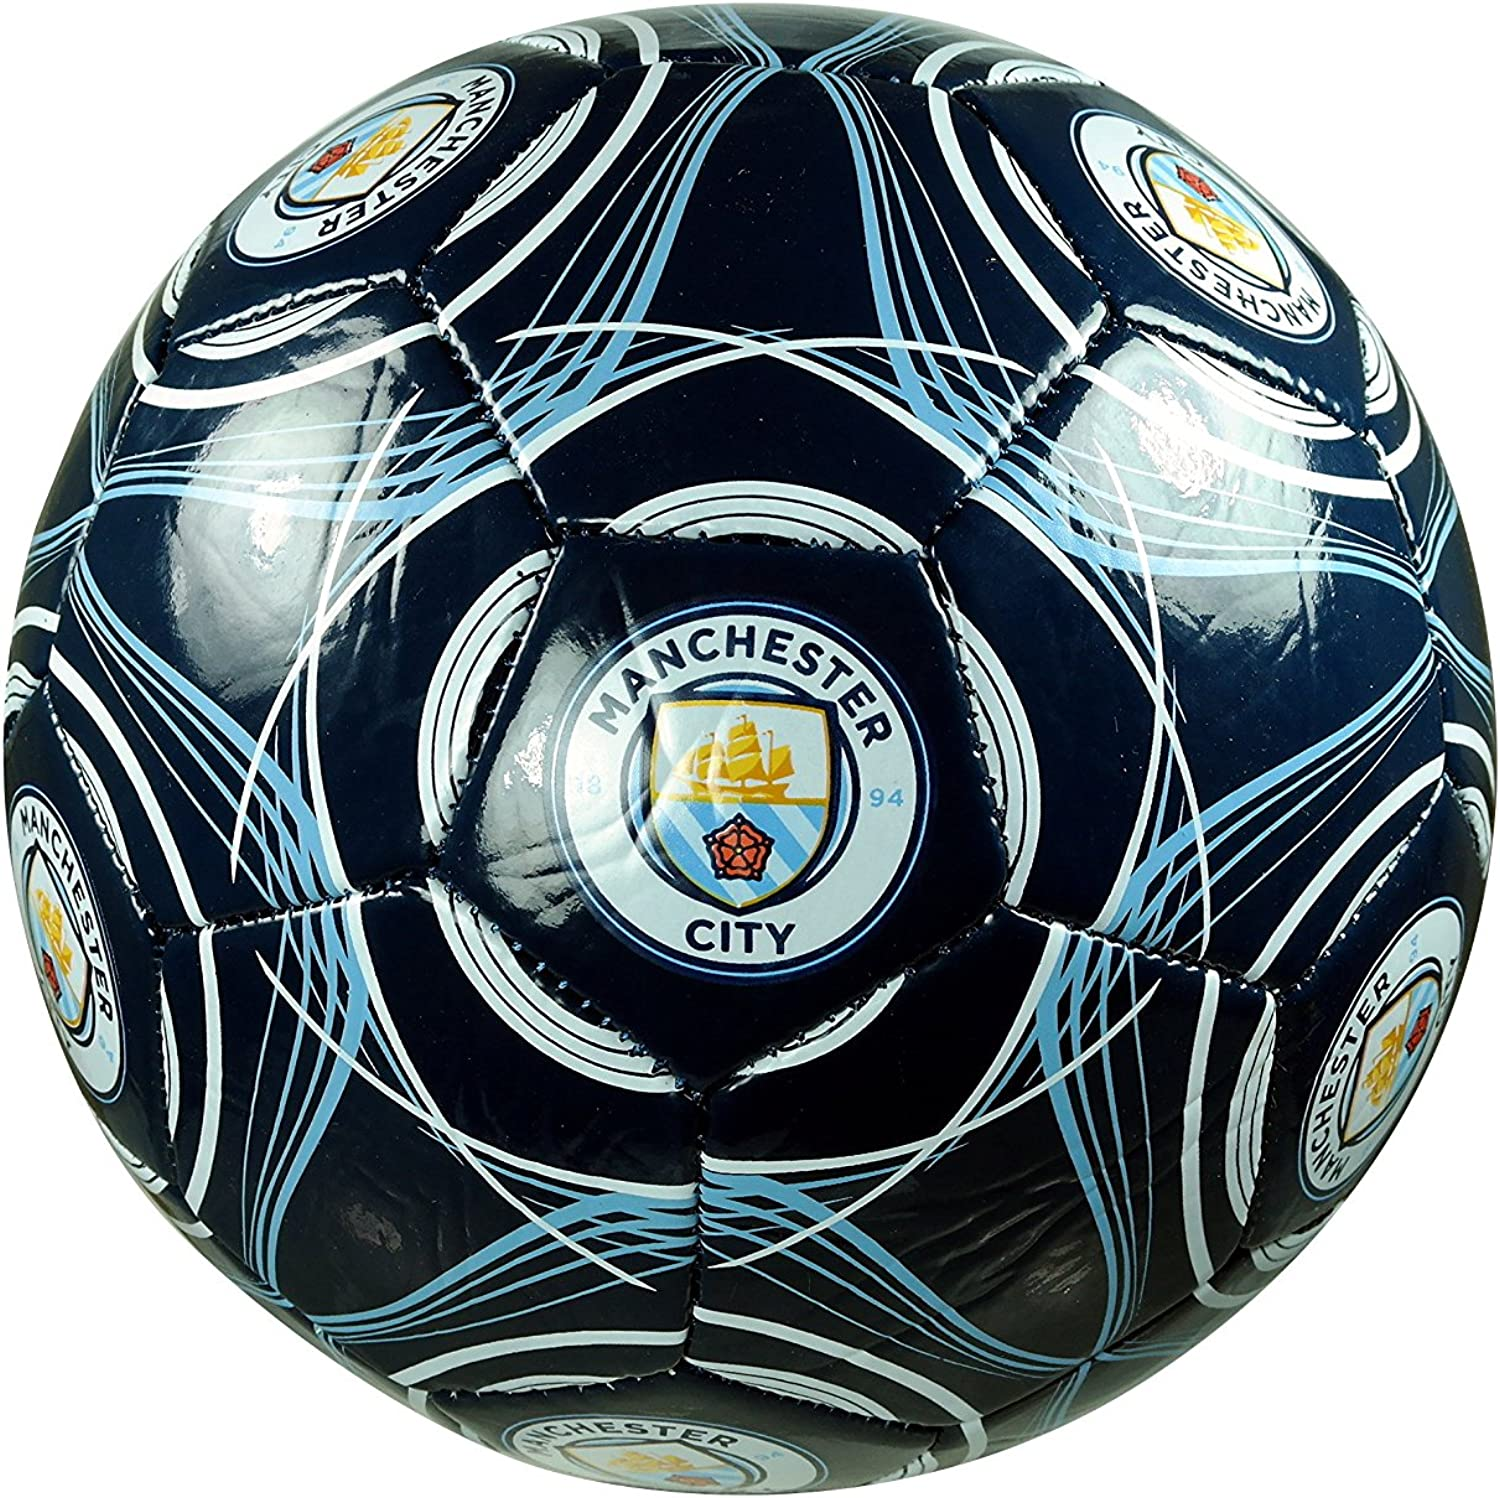 Manchester City F.C. Las Vegas Mall Authentic Official Soccer Ball Siz Super intense SALE Licensed